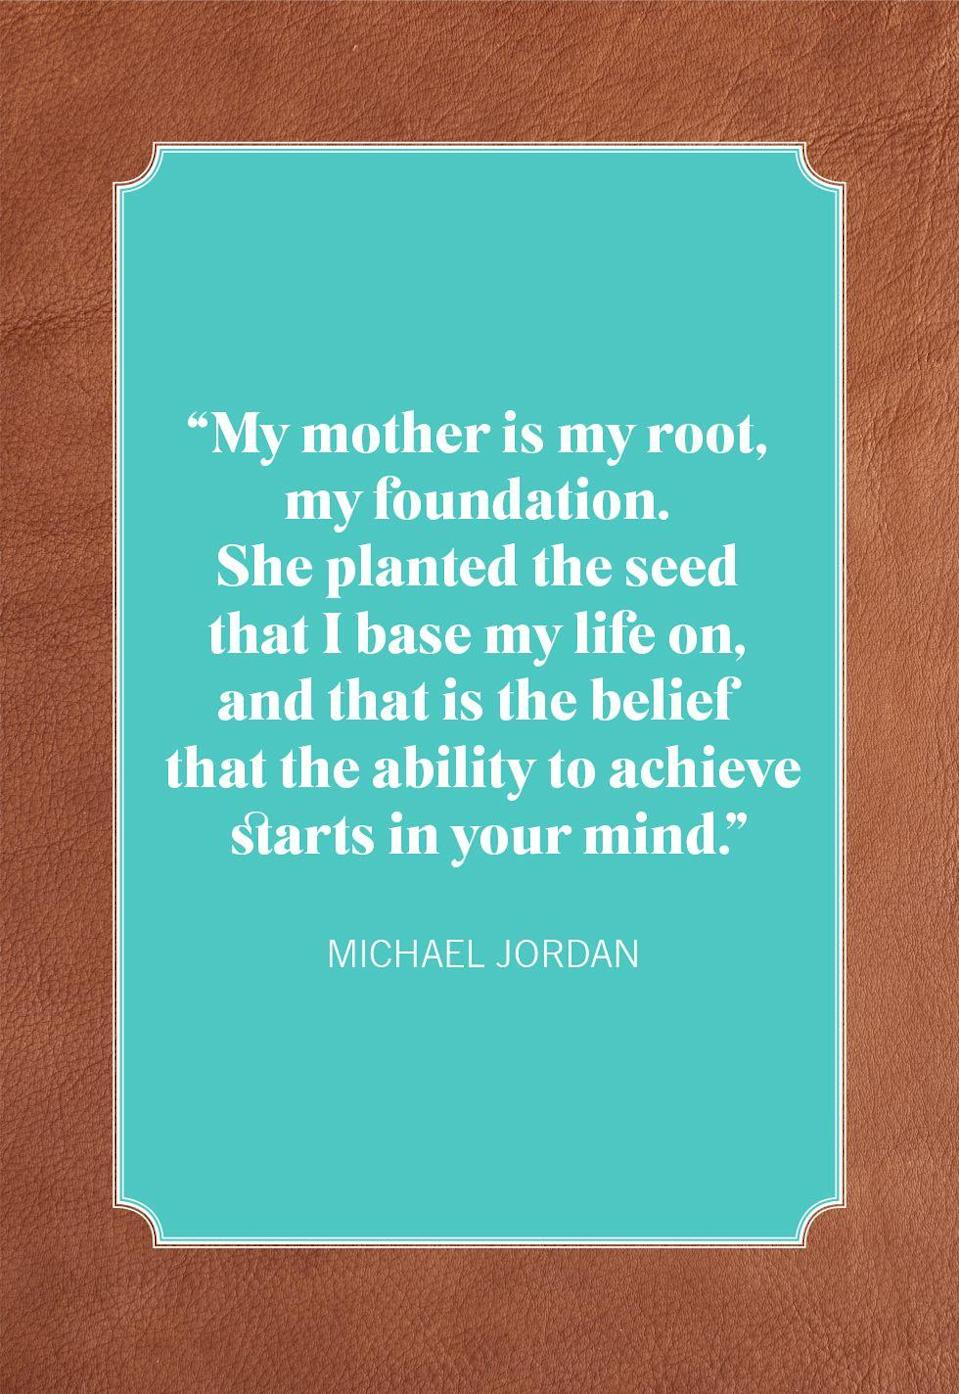 """<p>""""My mother is my root, my foundation. She planted the seed that I base my life on, and that is the belief that the ability to achieve starts in your mind.""""</p>"""